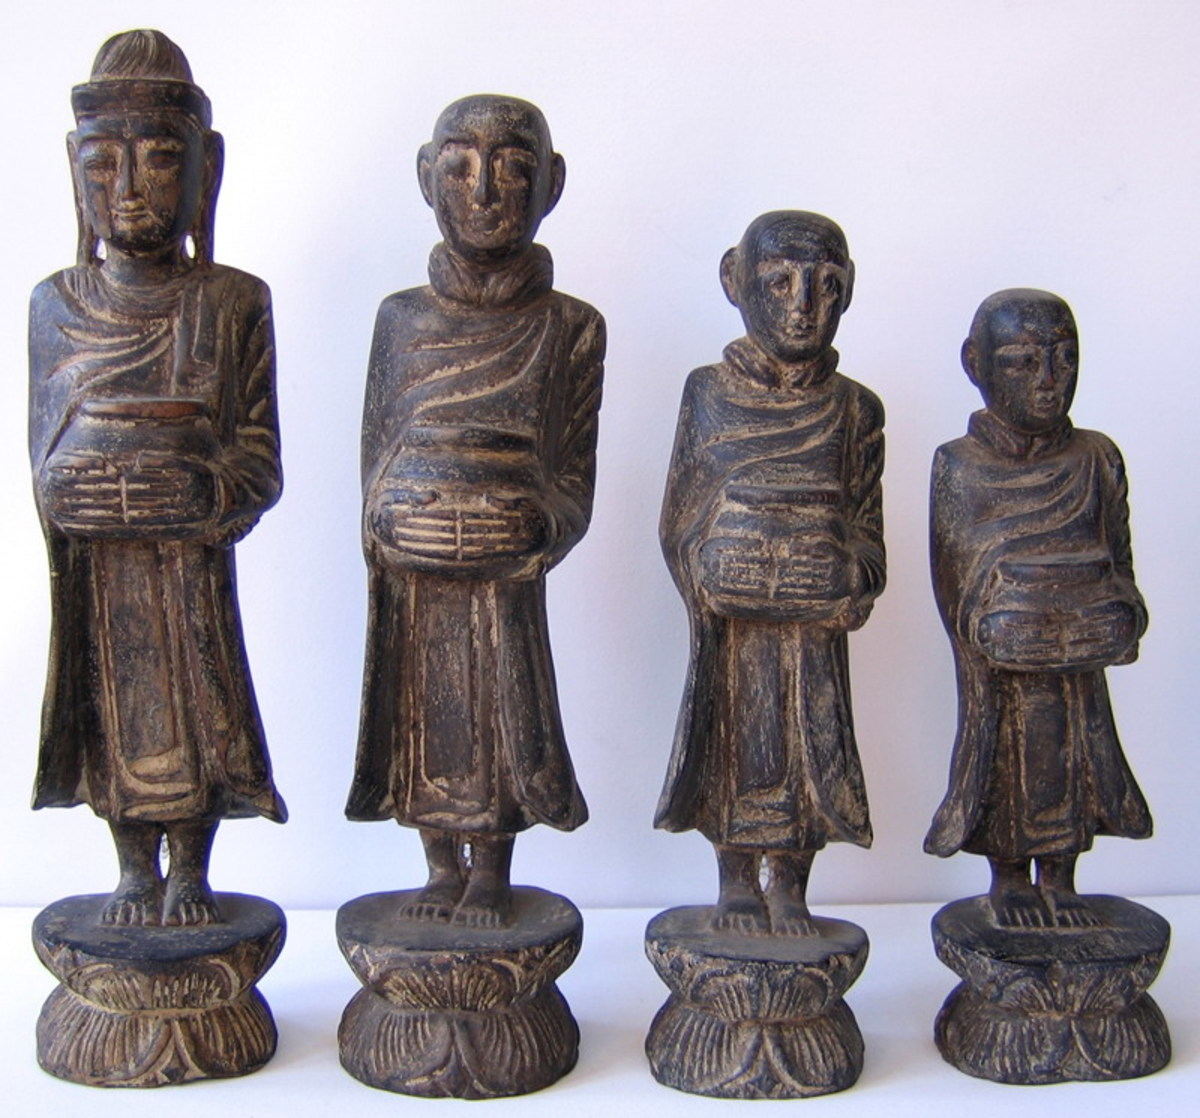 Wood Carving of the Buddha and Monks